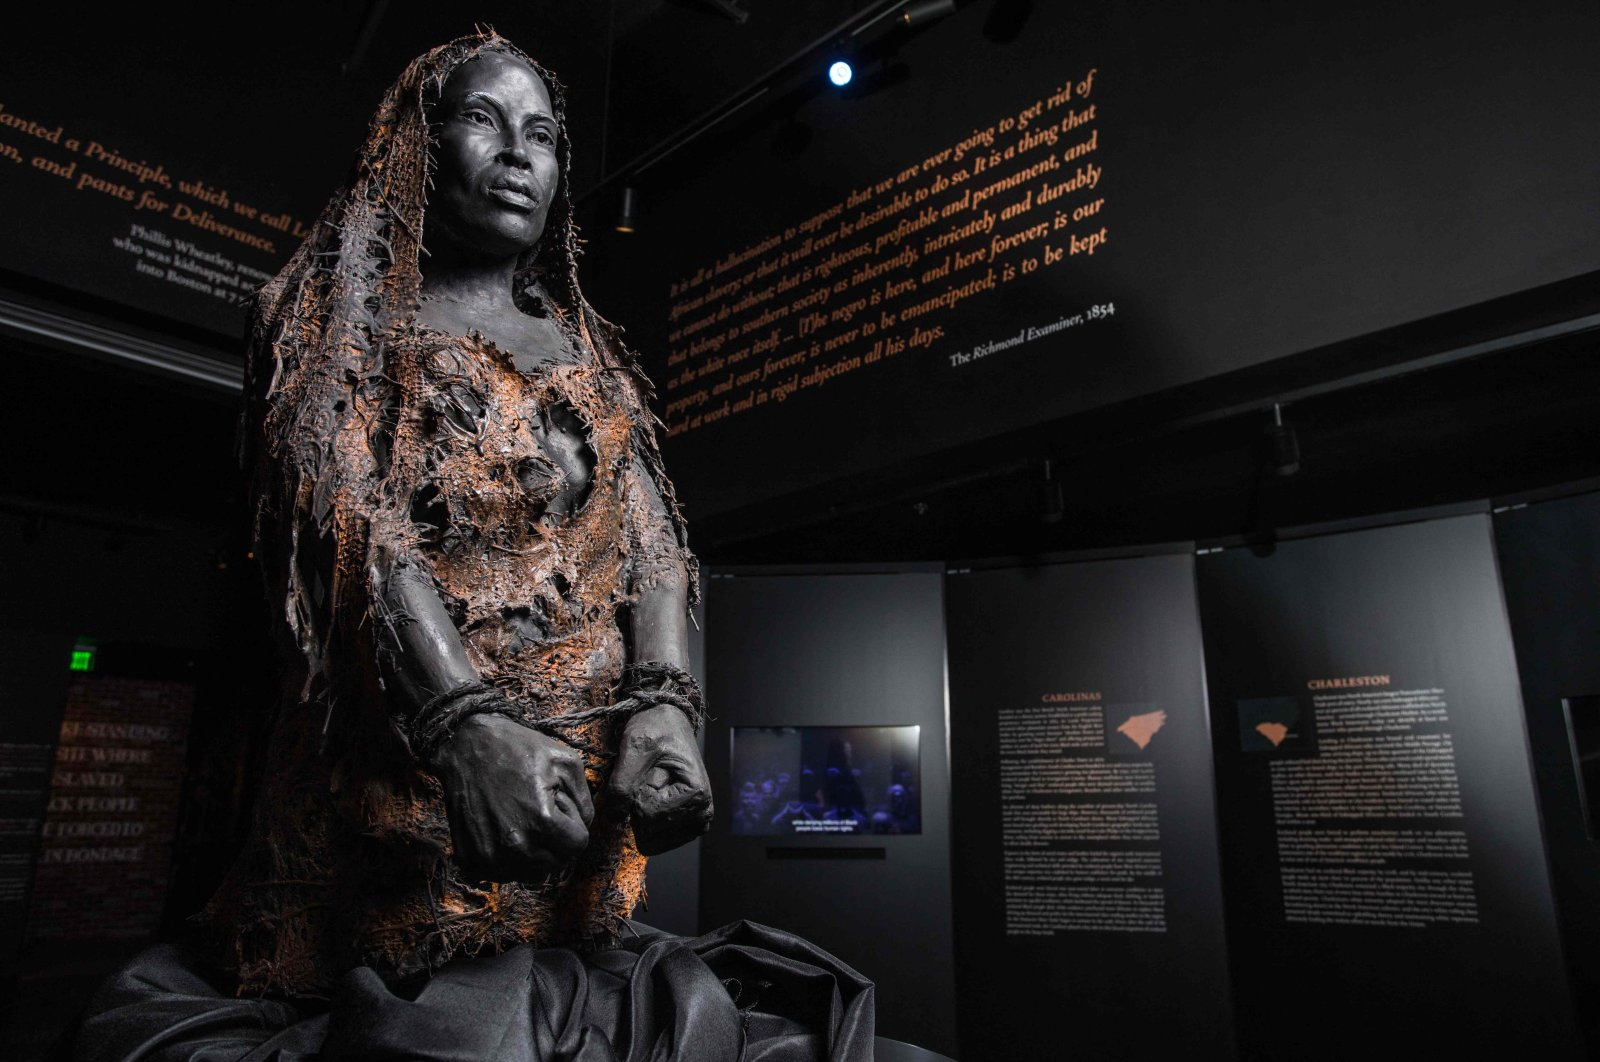 This Sept. 6, 2021, image courtesy of the Equal Justice Initiative, shows an exhibit at the Legacy Museum in Montgomery, Alabama. (Equal Justice Initiative Photo via AFP)